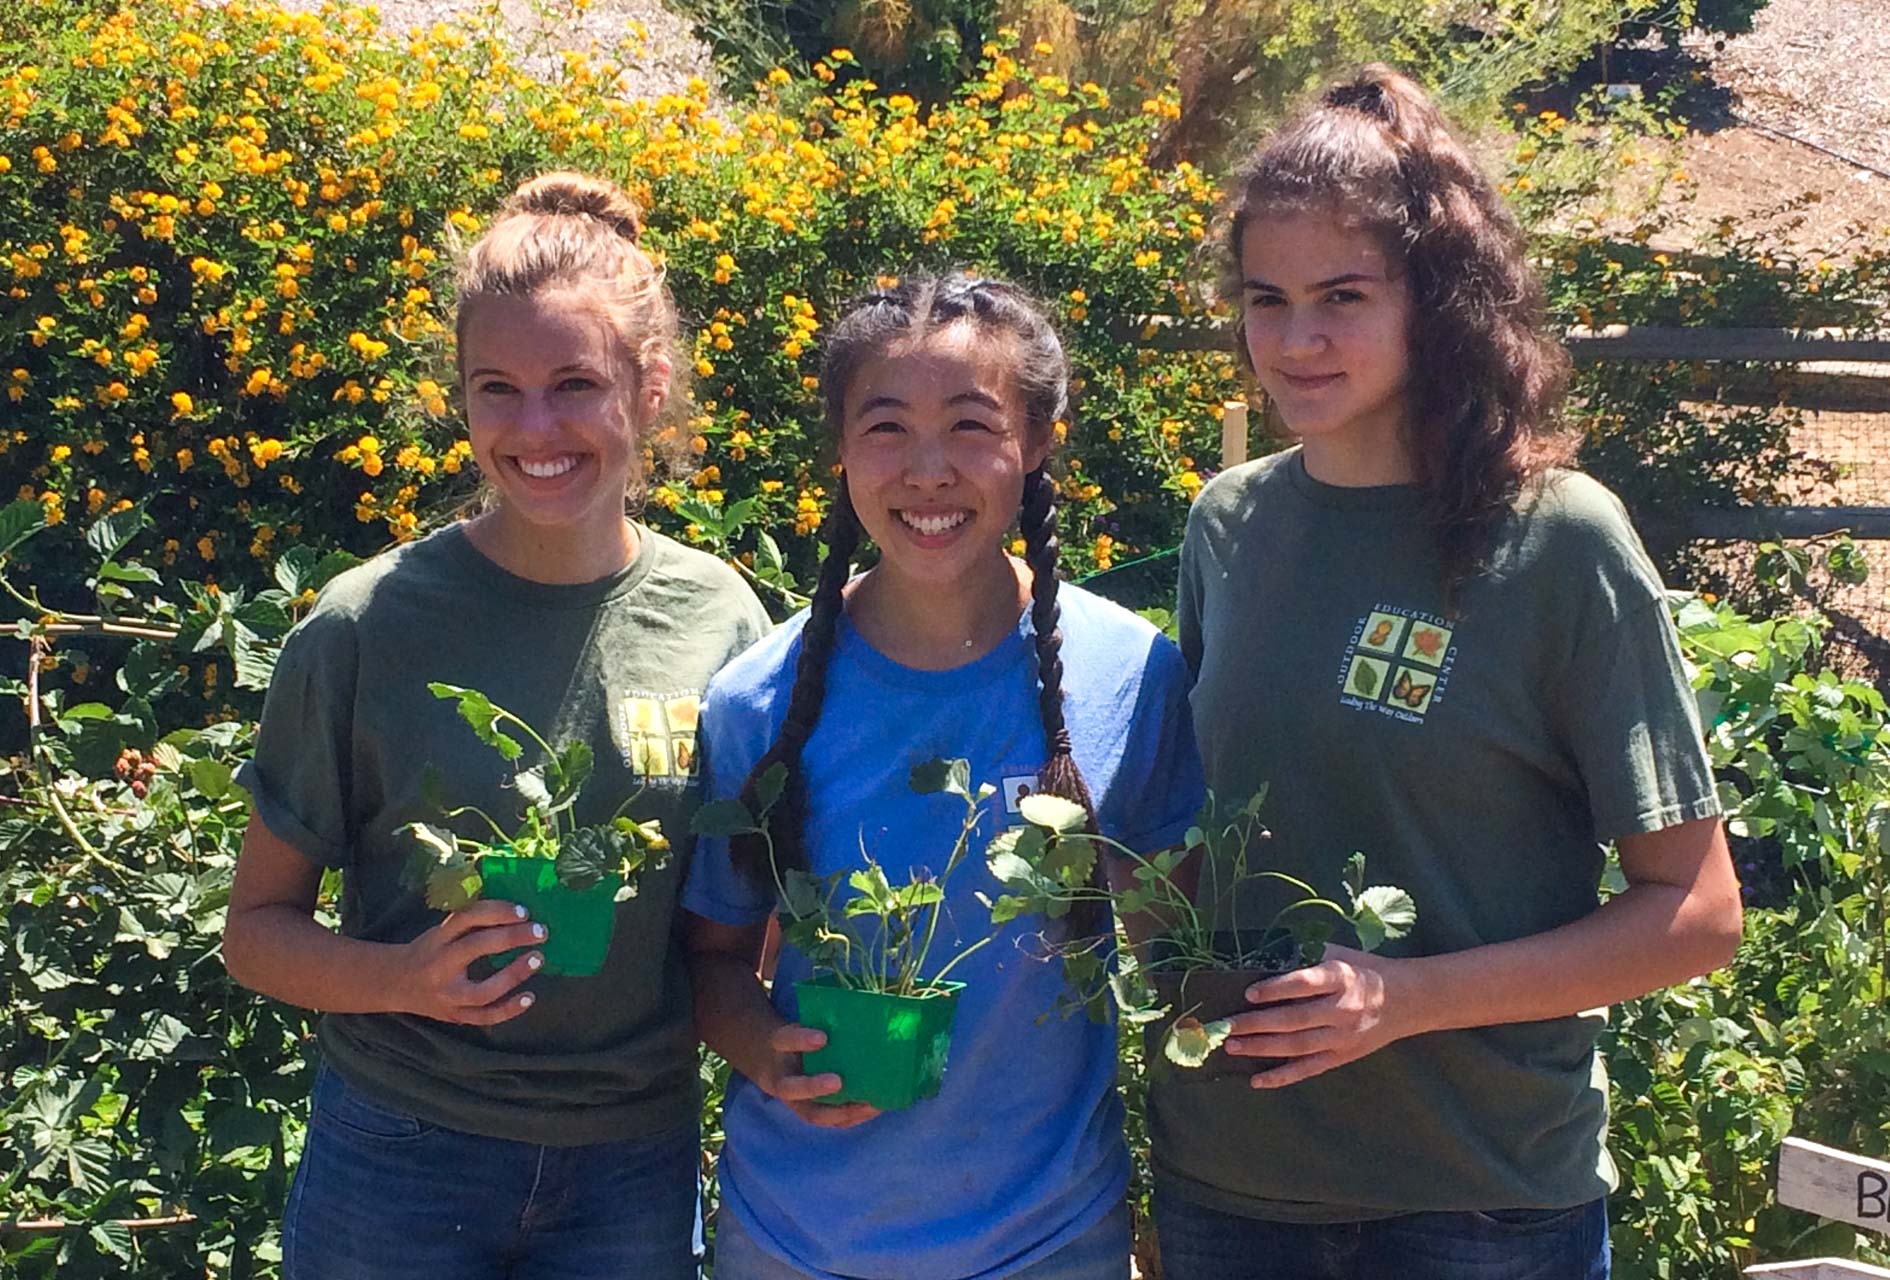 Three girls volunteering and holding flower pots